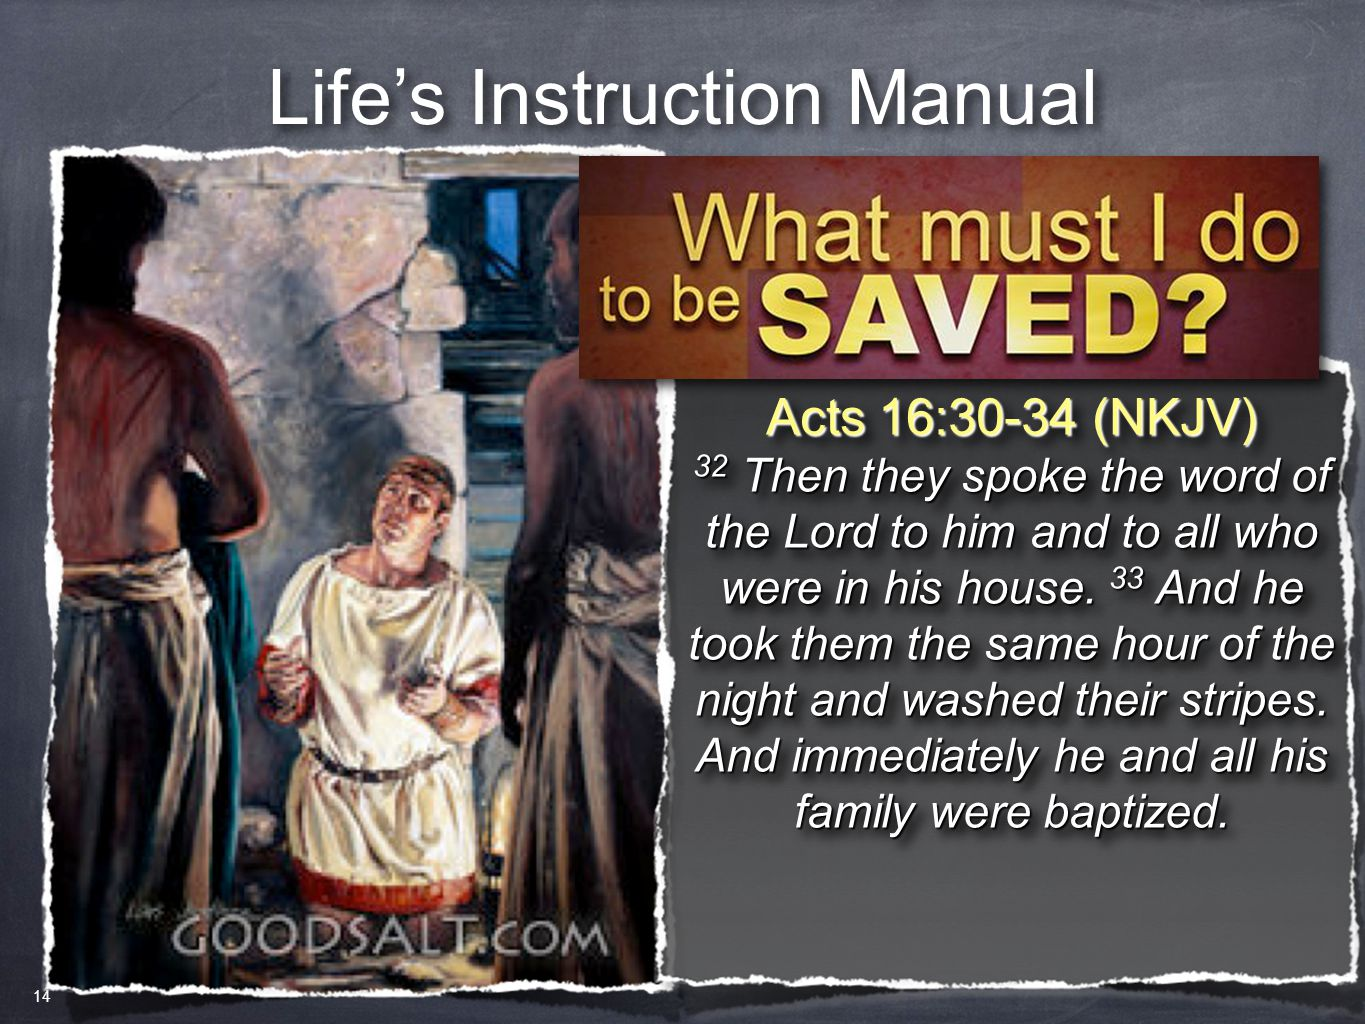 Life's Instruction Manual Acts 16:30-34 (NKJV) 32 Then they spoke the word of the Lord to him and to all who were in his house. 33 And he took them th